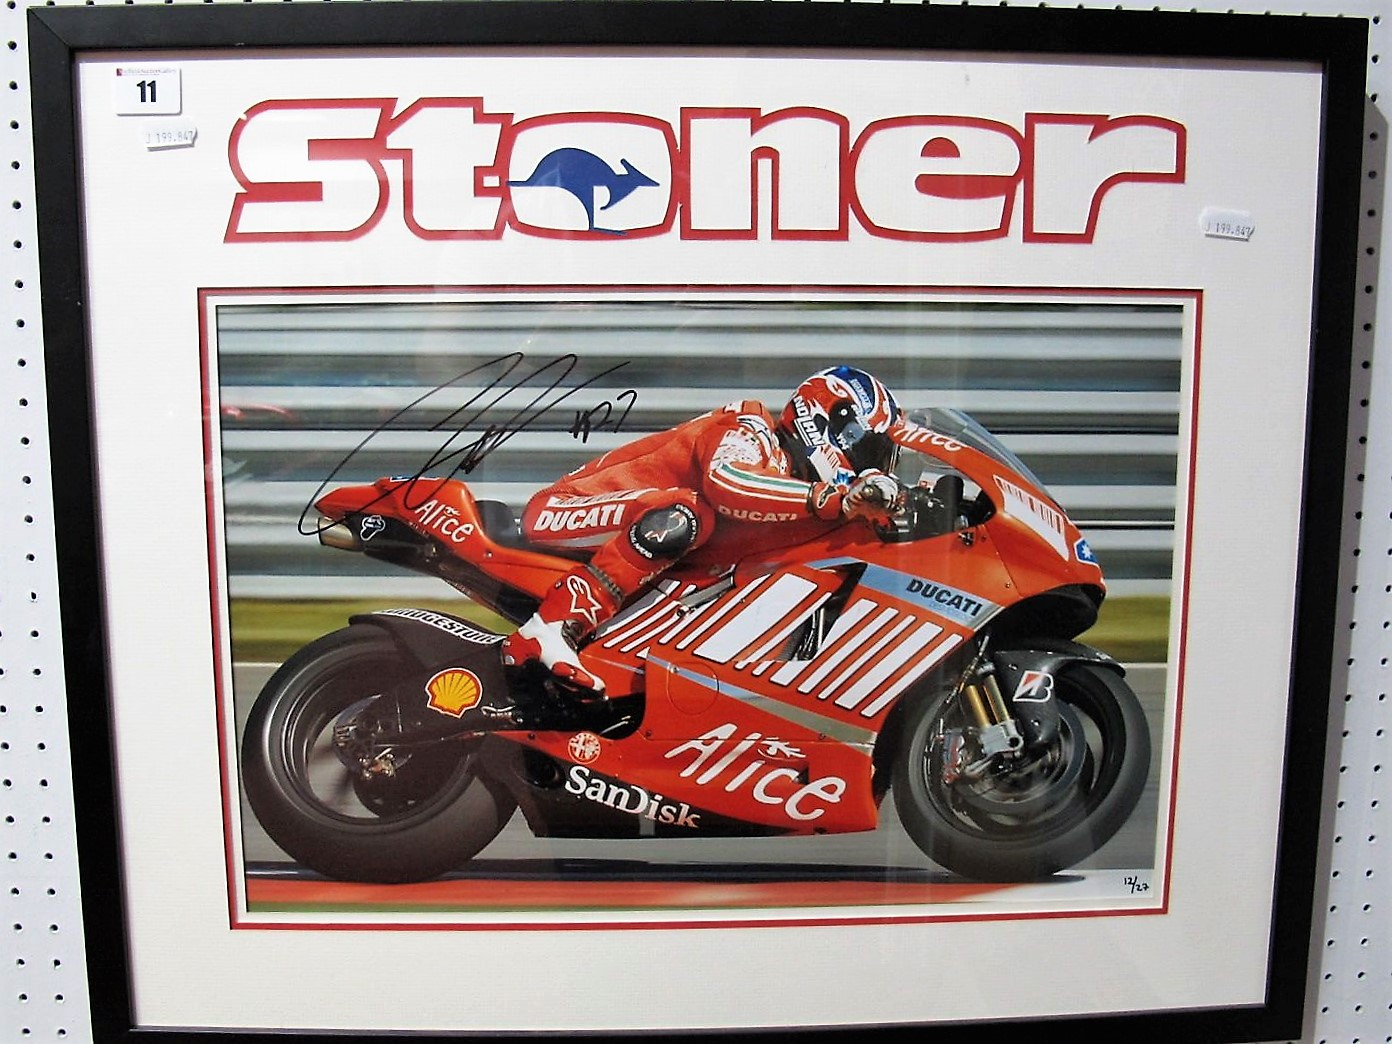 Lot 11 - Casey Stoner Signed Ltd Edition Print, with Stoner logo, framed 12/27 (27 being his racing No), 2007